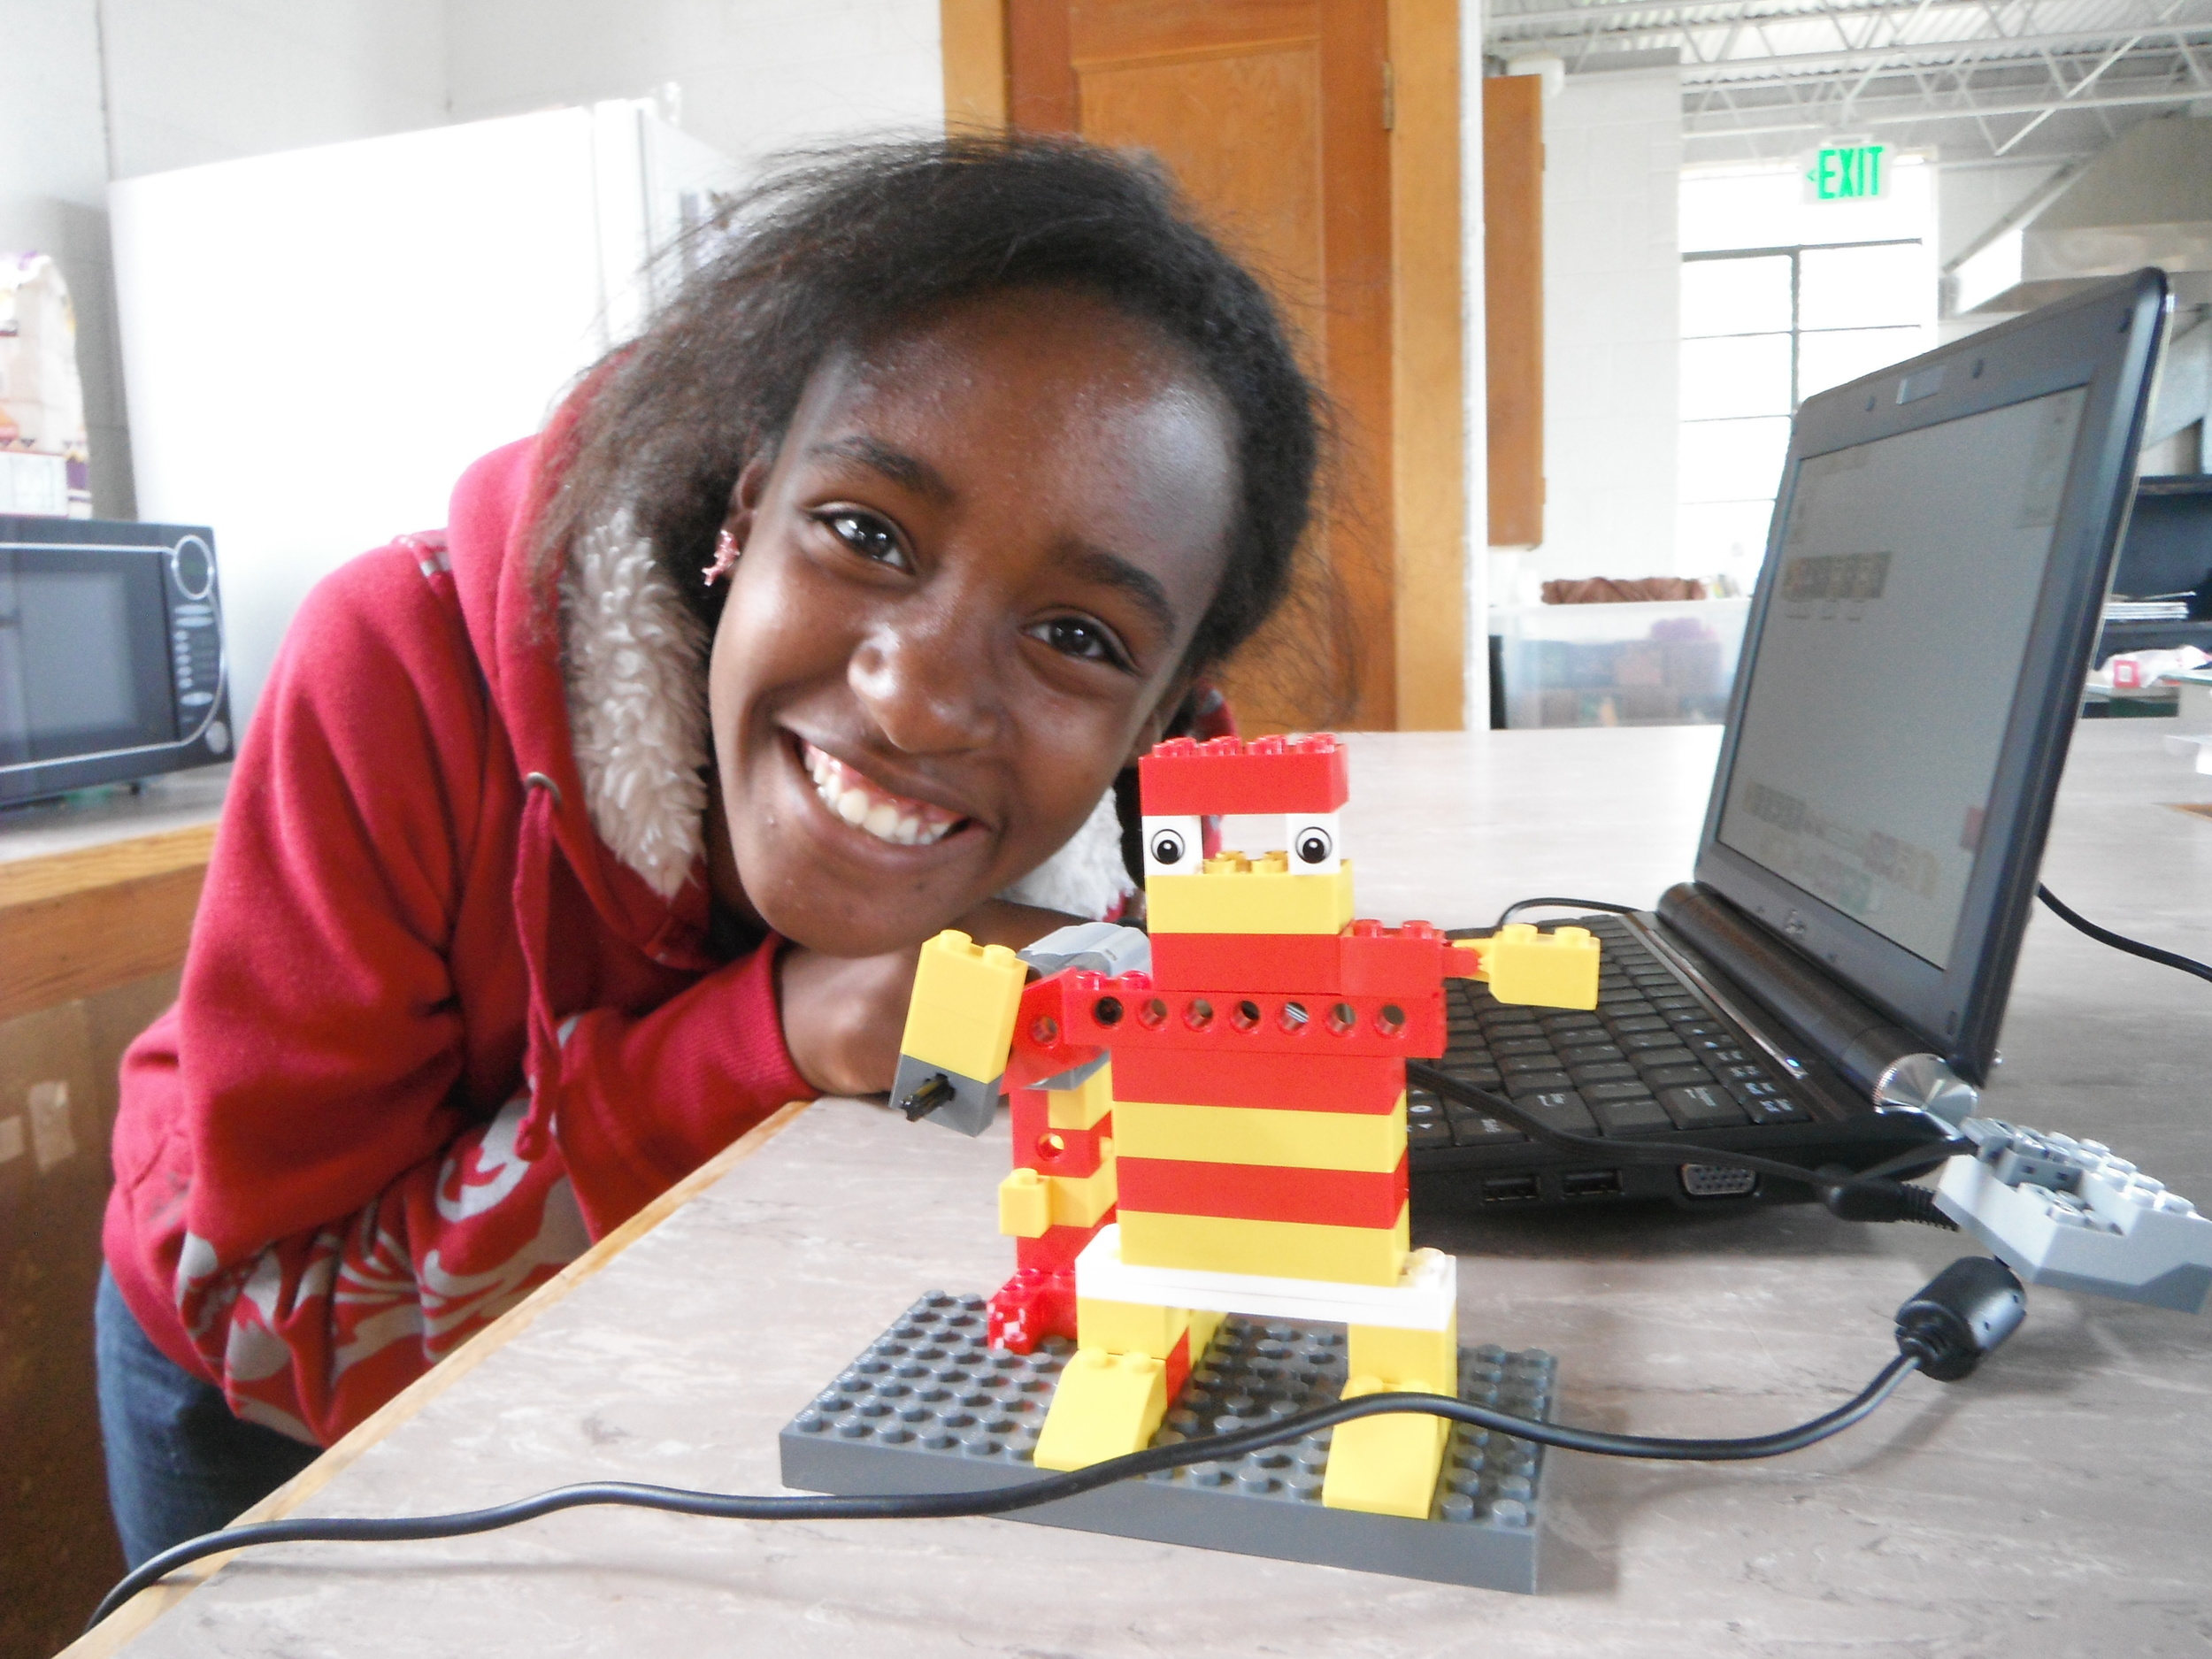 Camper with her robot.